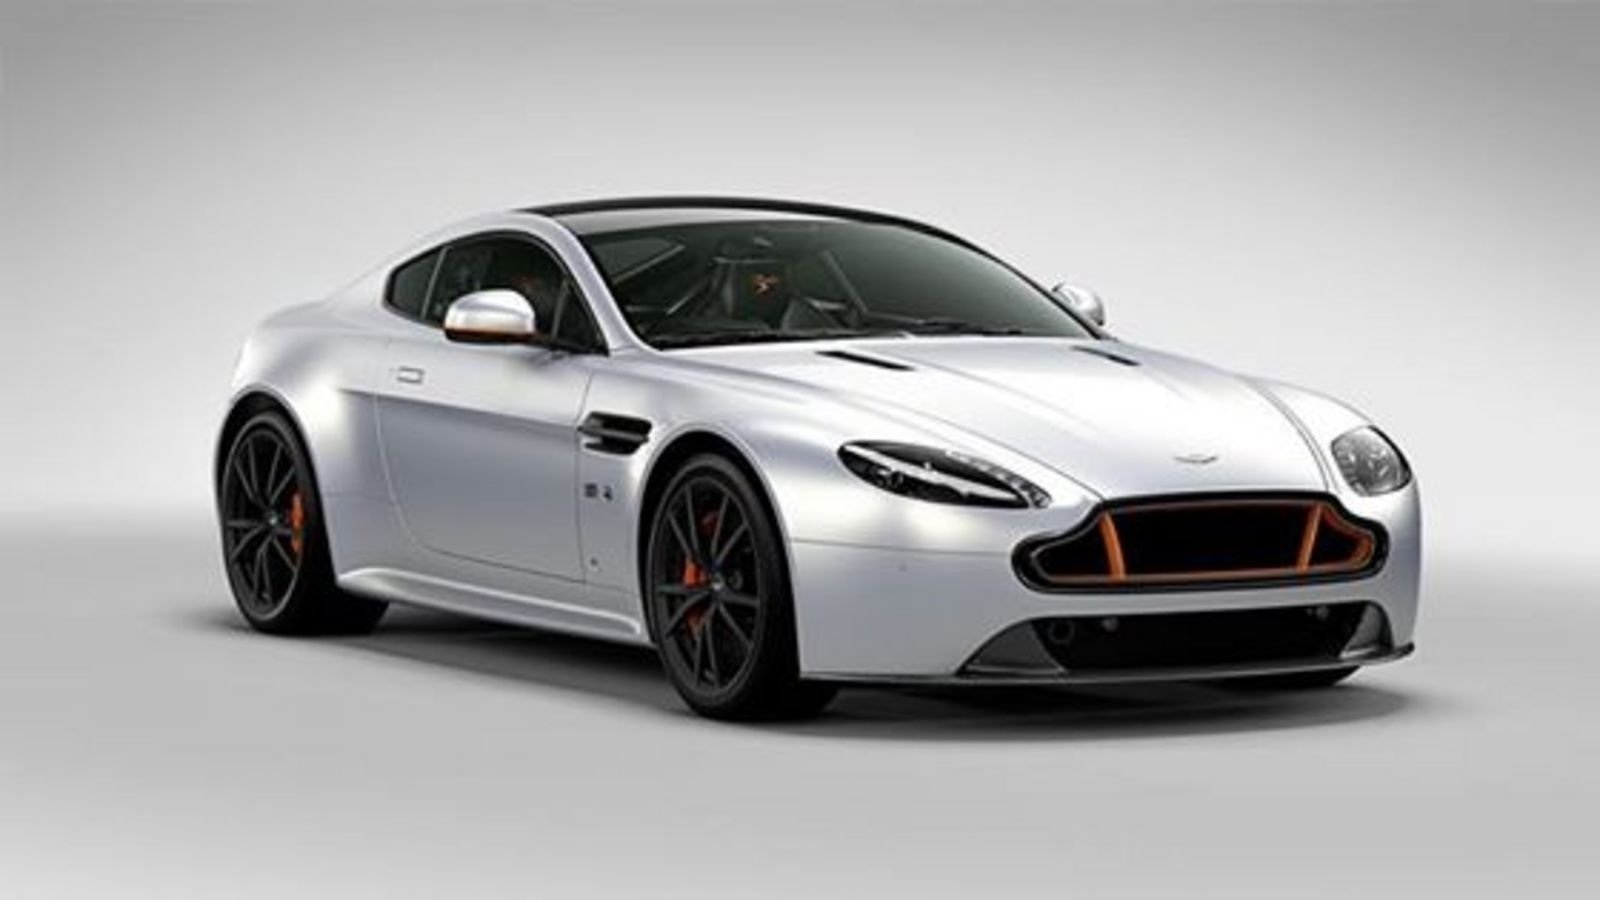 2016 aston martin v8 vantage s blades edition review top speed. Black Bedroom Furniture Sets. Home Design Ideas